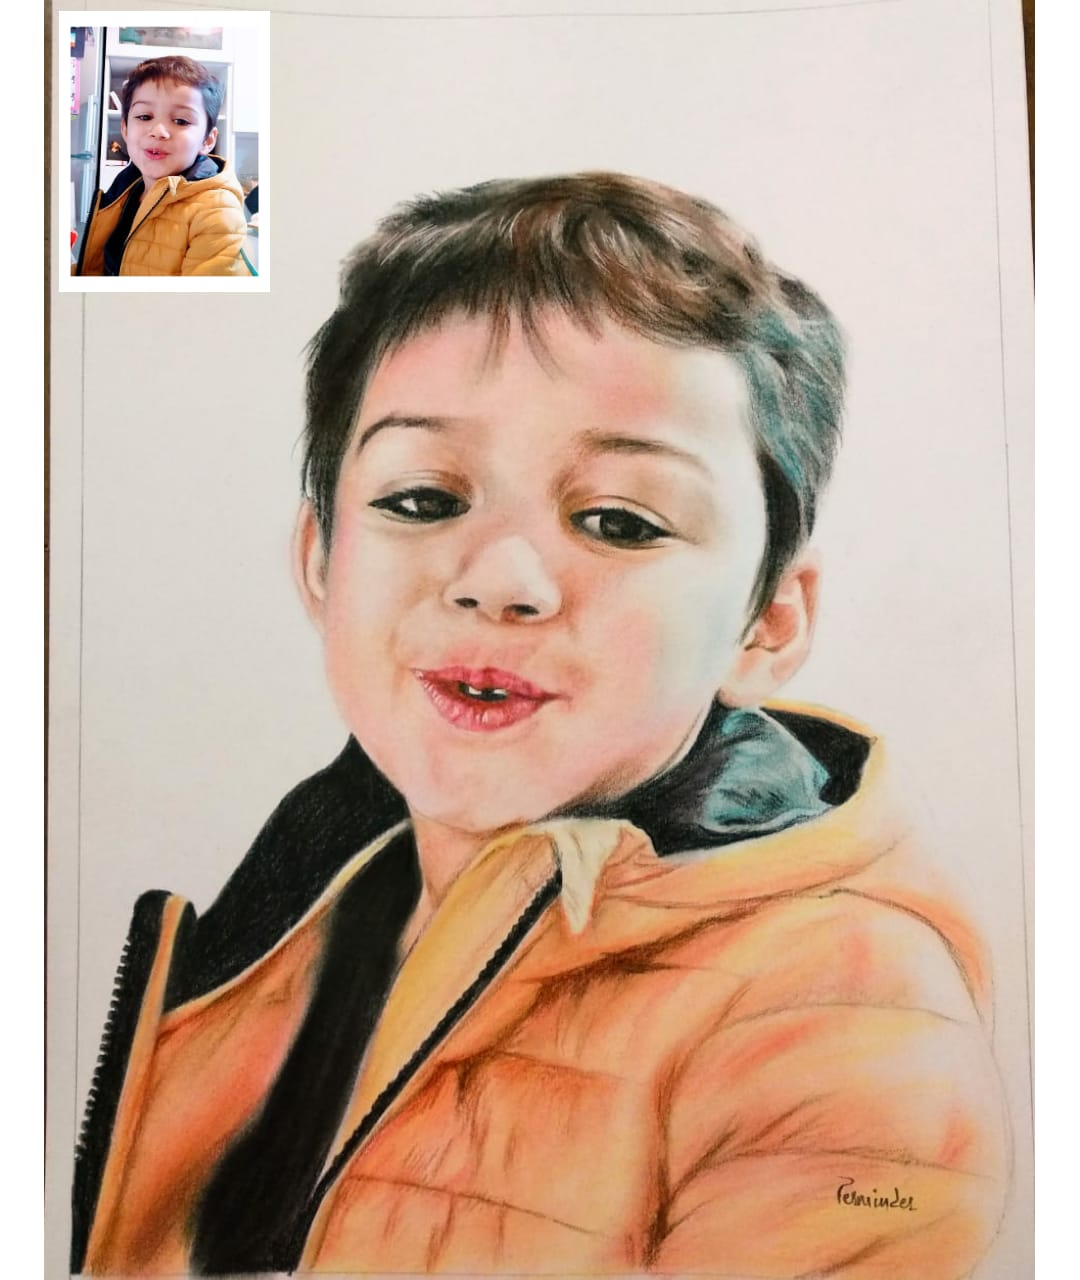 Baby Color-Pencil Sketch as birthday gift for him